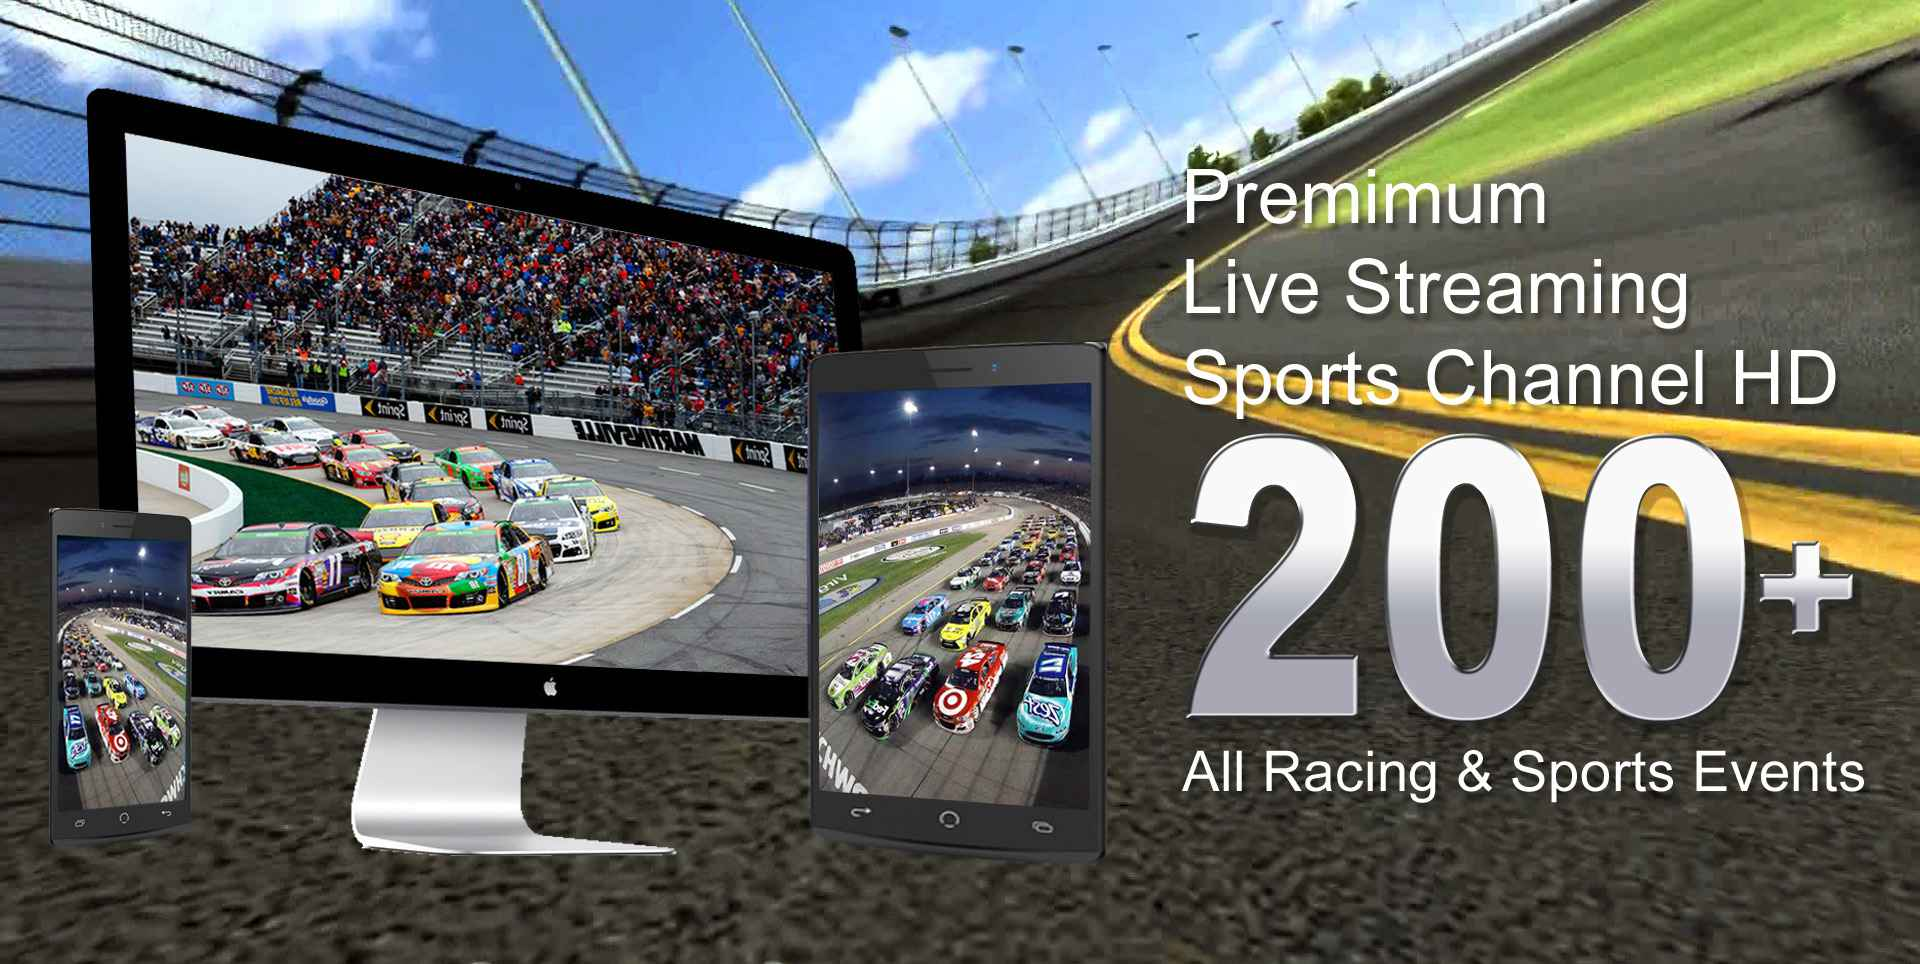 Brickyard 400 NASCAR Sprint Series